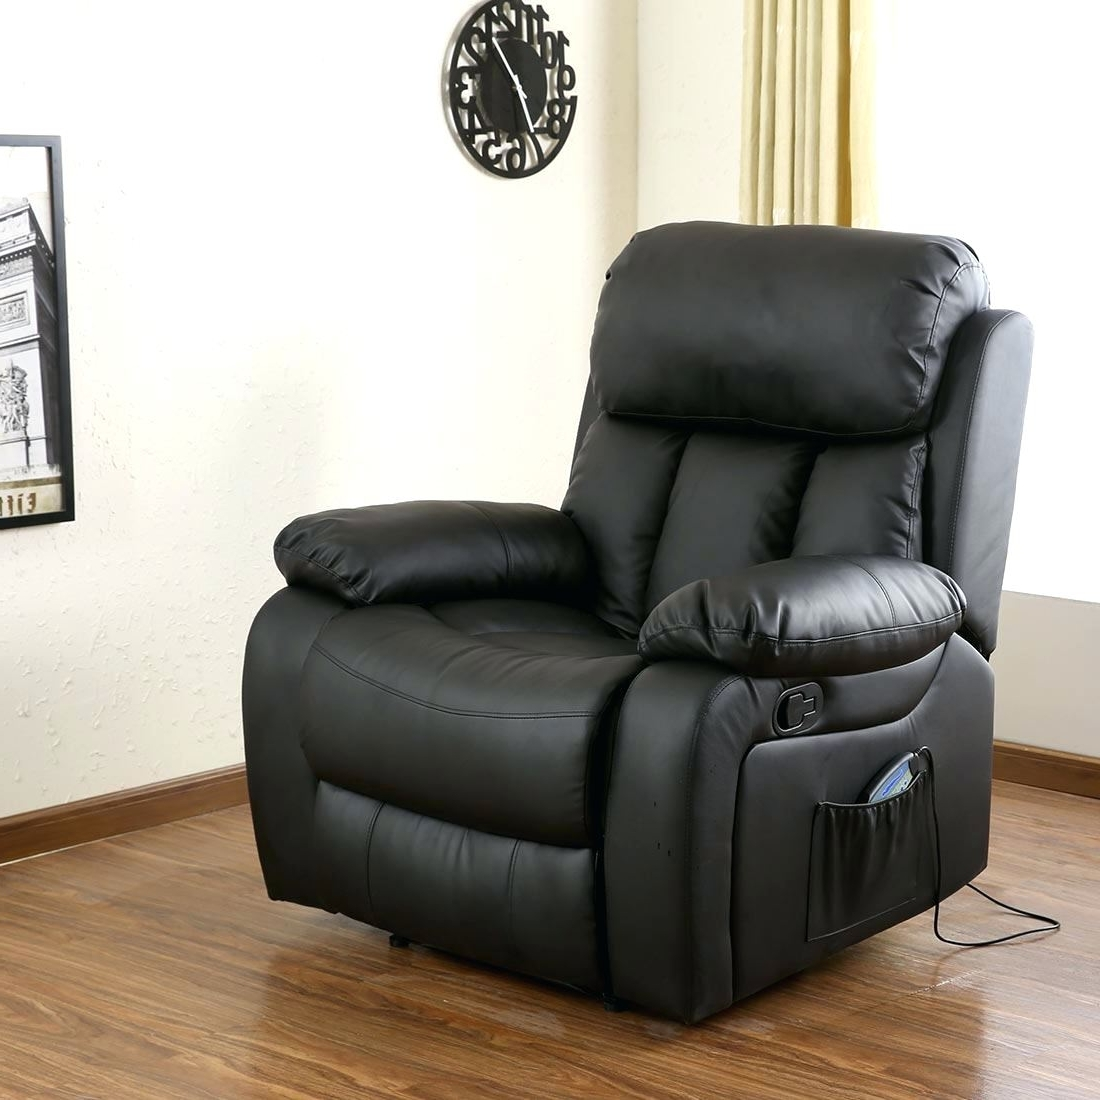 Latest Sofa Lounge Chair Black Accent Lounge Chair Sofa Bed Sofa Sleeper Within Varossa Chaise Lounge Recliner Chair Sofabeds (View 9 of 15)